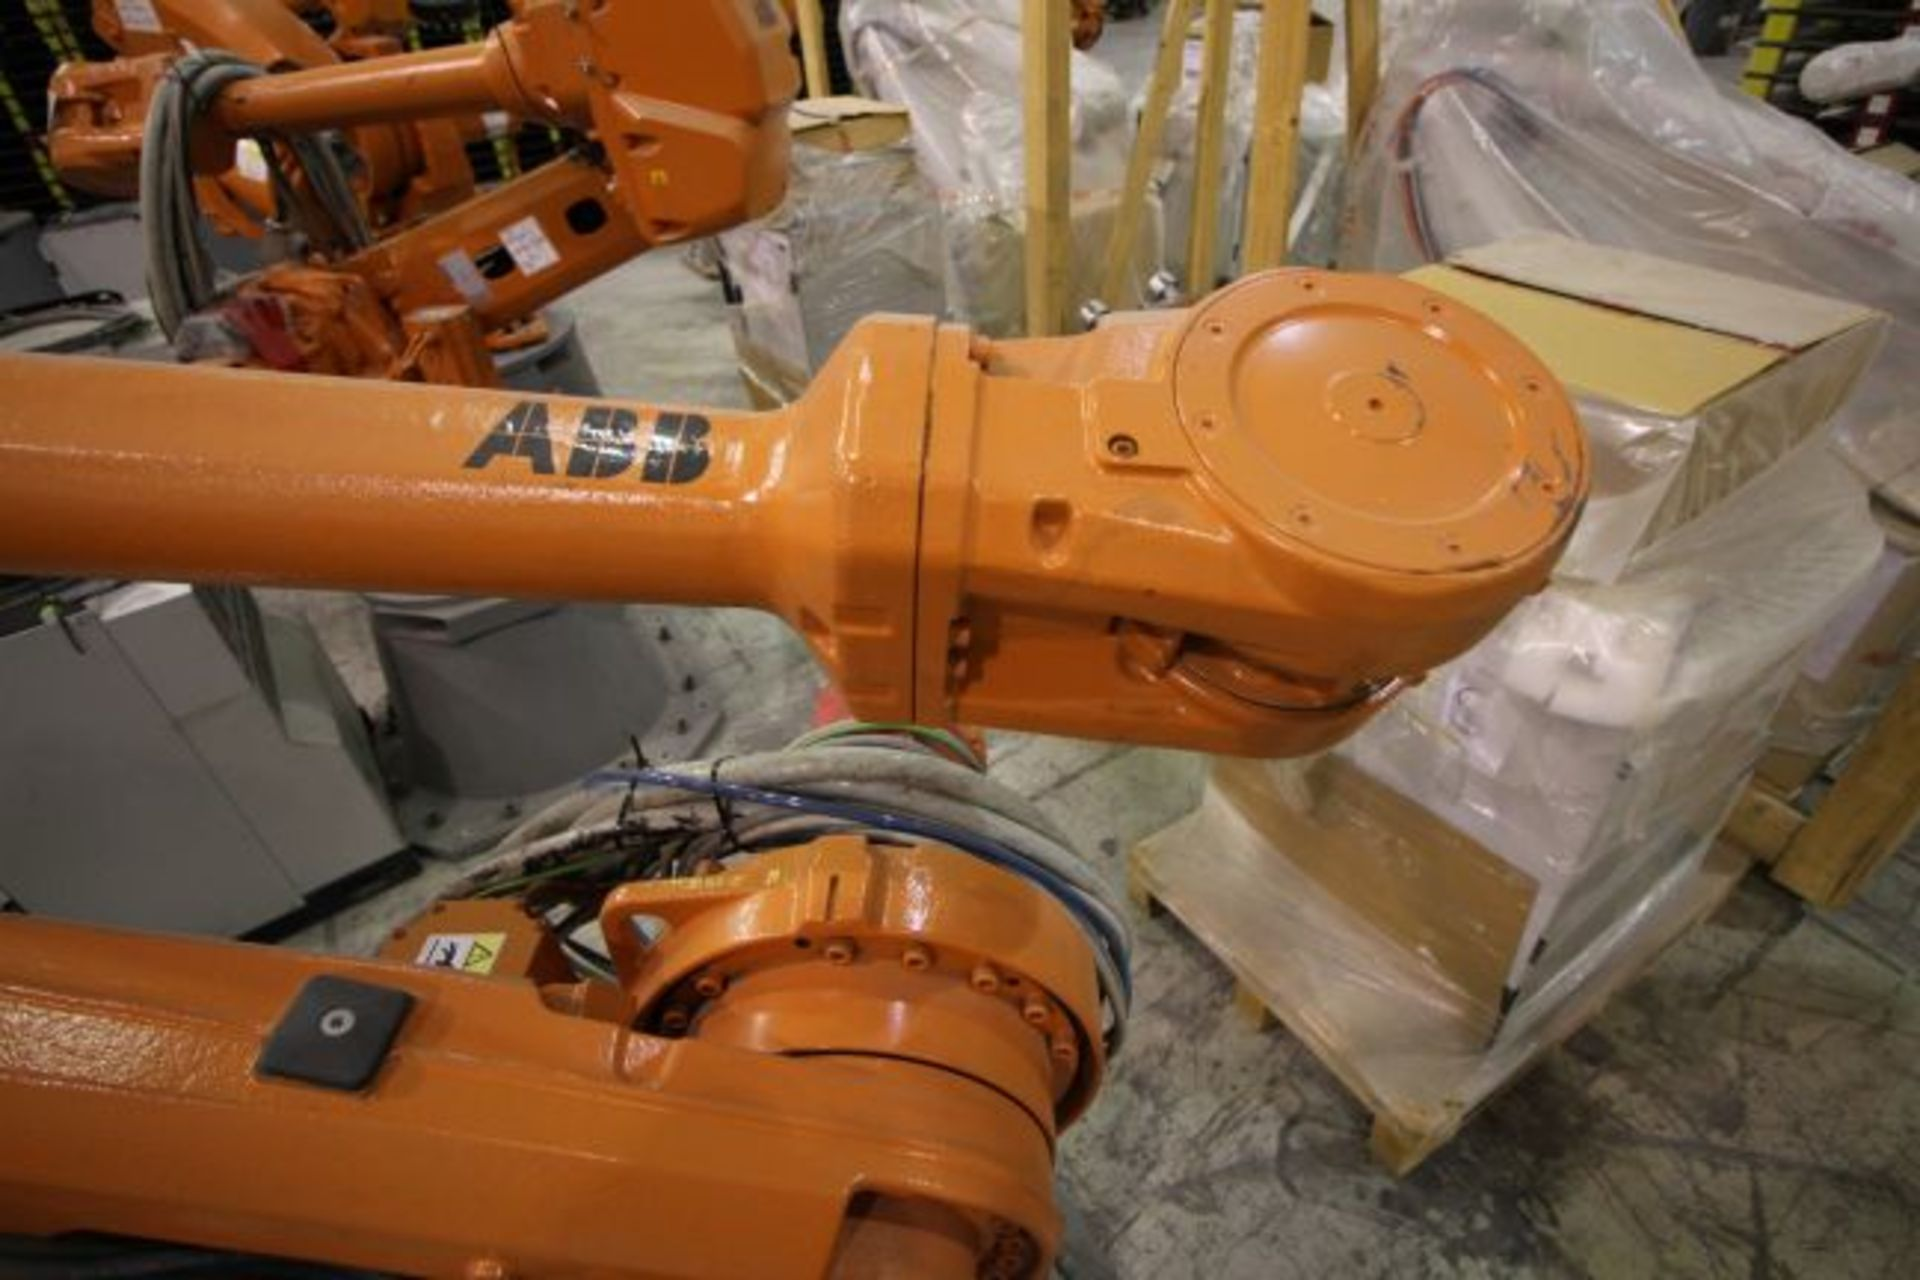 ABB ROBOT IRB 4600 2.55/40KG WITH IRC5 CONTROLS, YEAR 2014, SN 500869TEACH PENDANT& CABLES - Image 3 of 9